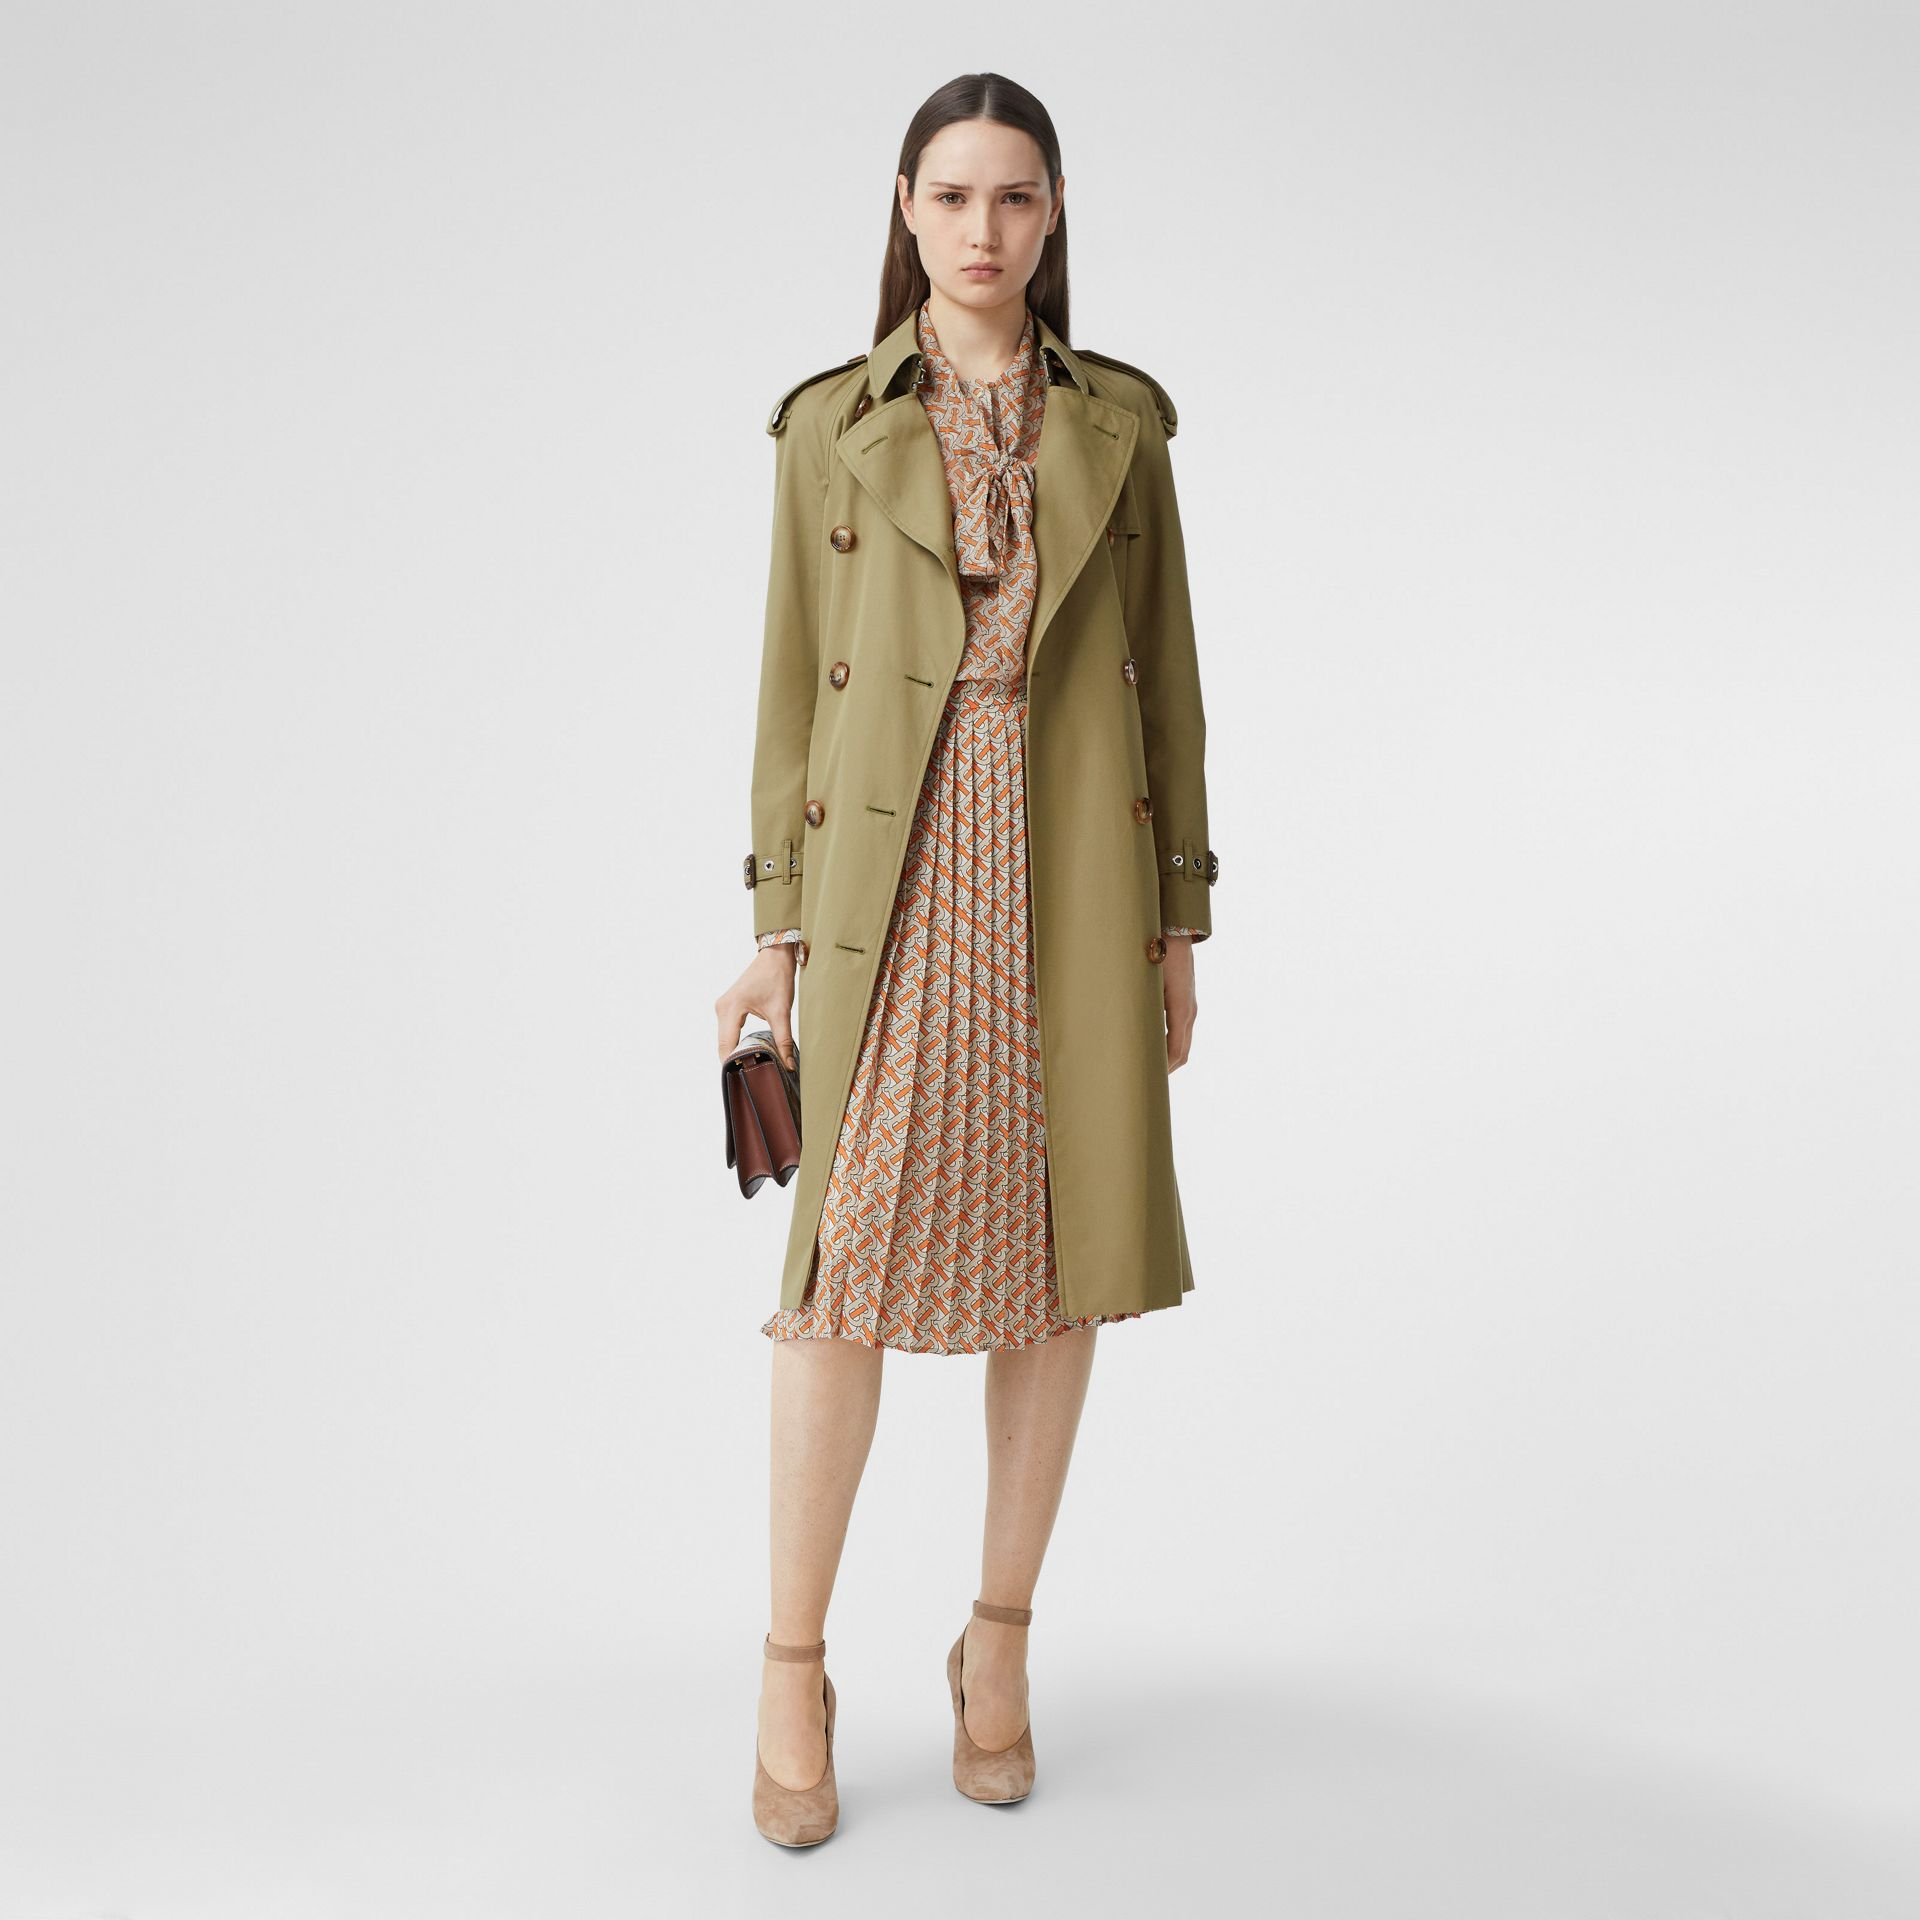 Animalia Print-lined Cotton Gabardine Trench Coat in Rich Olive - Women | Burberry Canada - gallery image 7